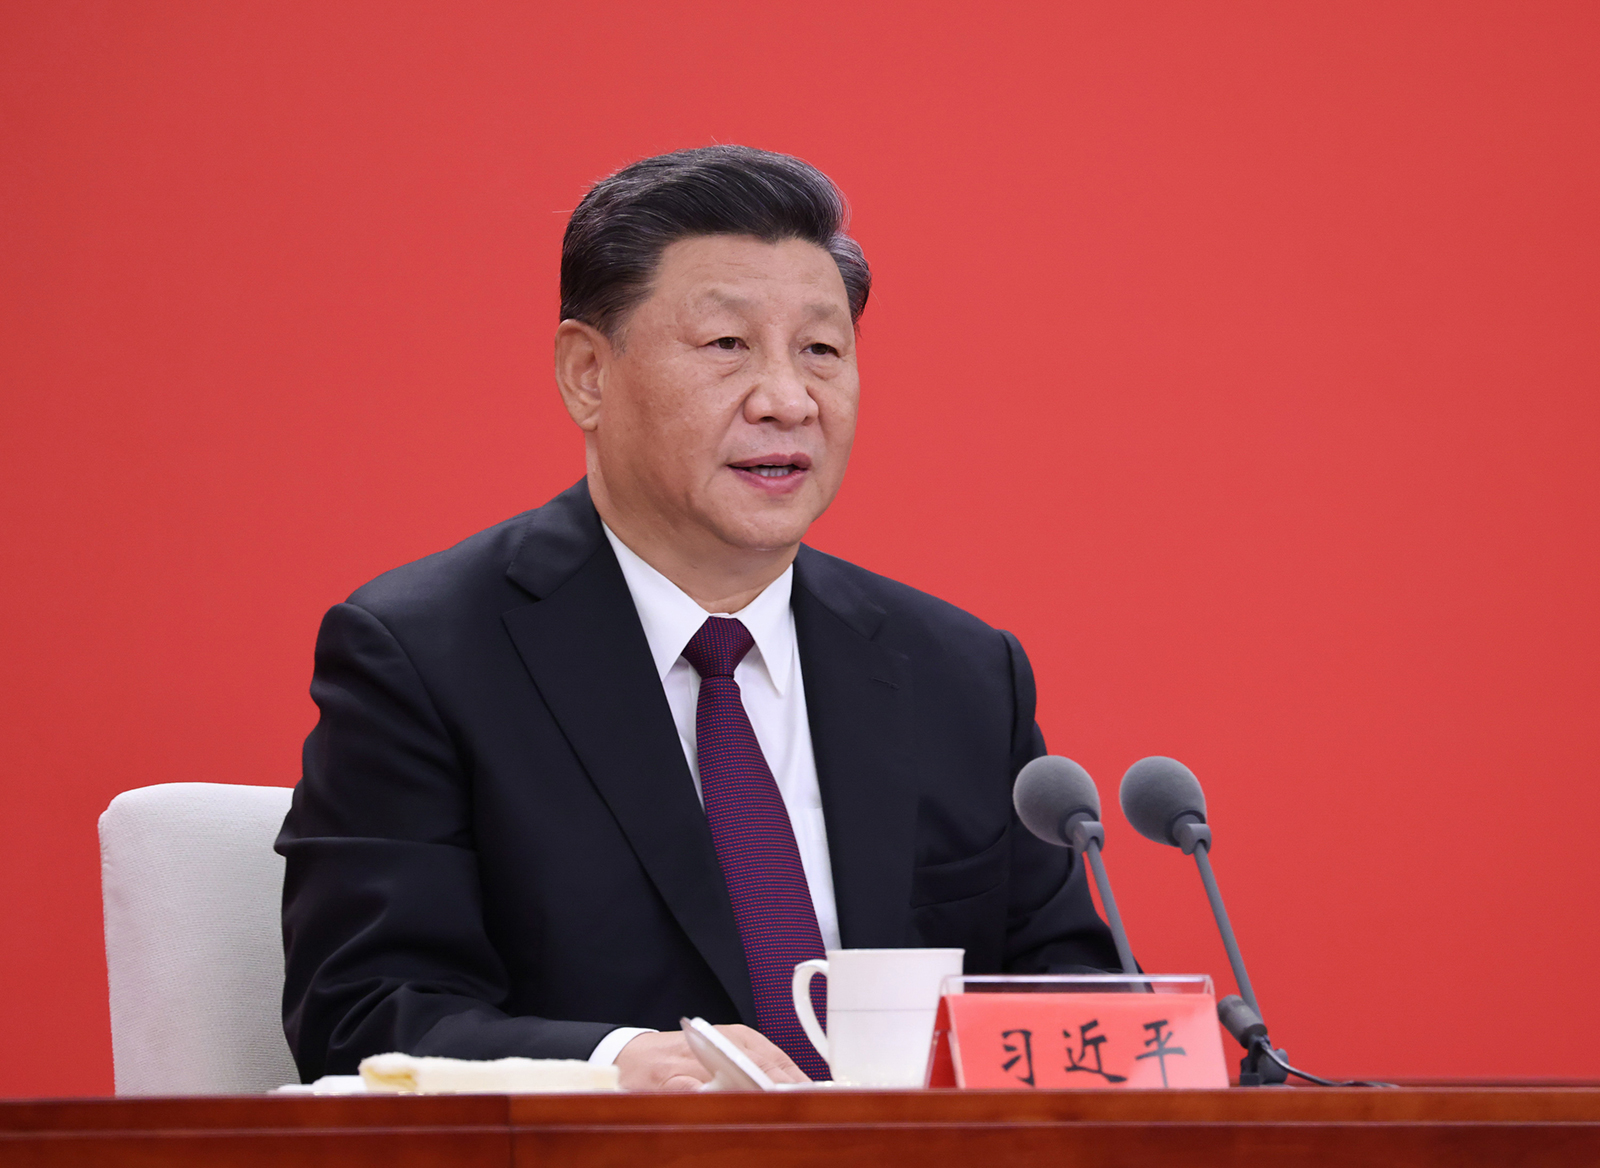 Chinese President Xi Jinping delivers a speech at the 40th anniversary of the establishment of the Shenzhen Special Economic Zone in Shenzhen, south China's Guangdong Province, on October 14.